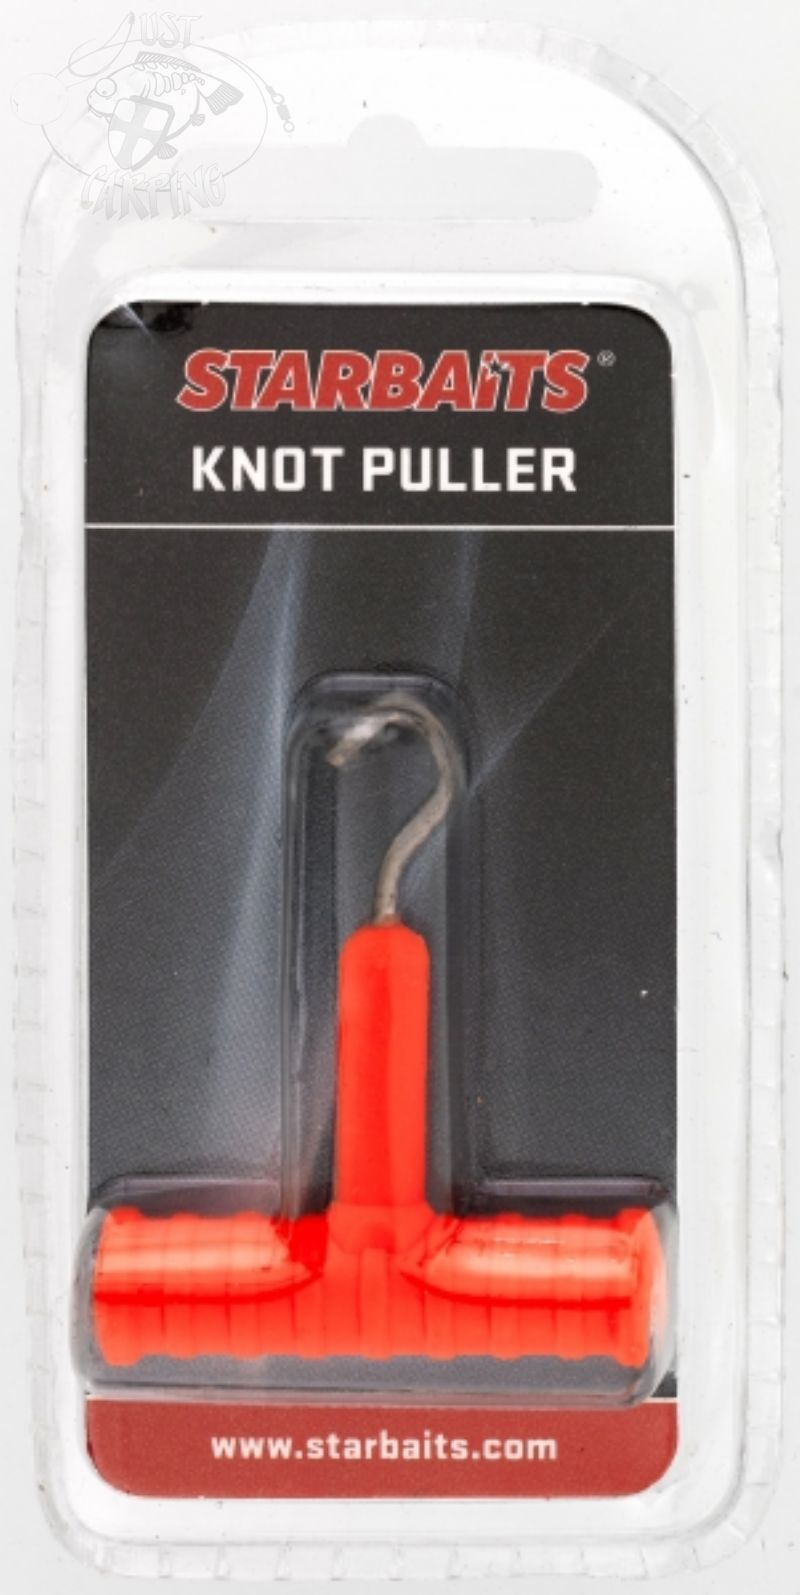 Starbaits Knot Puller